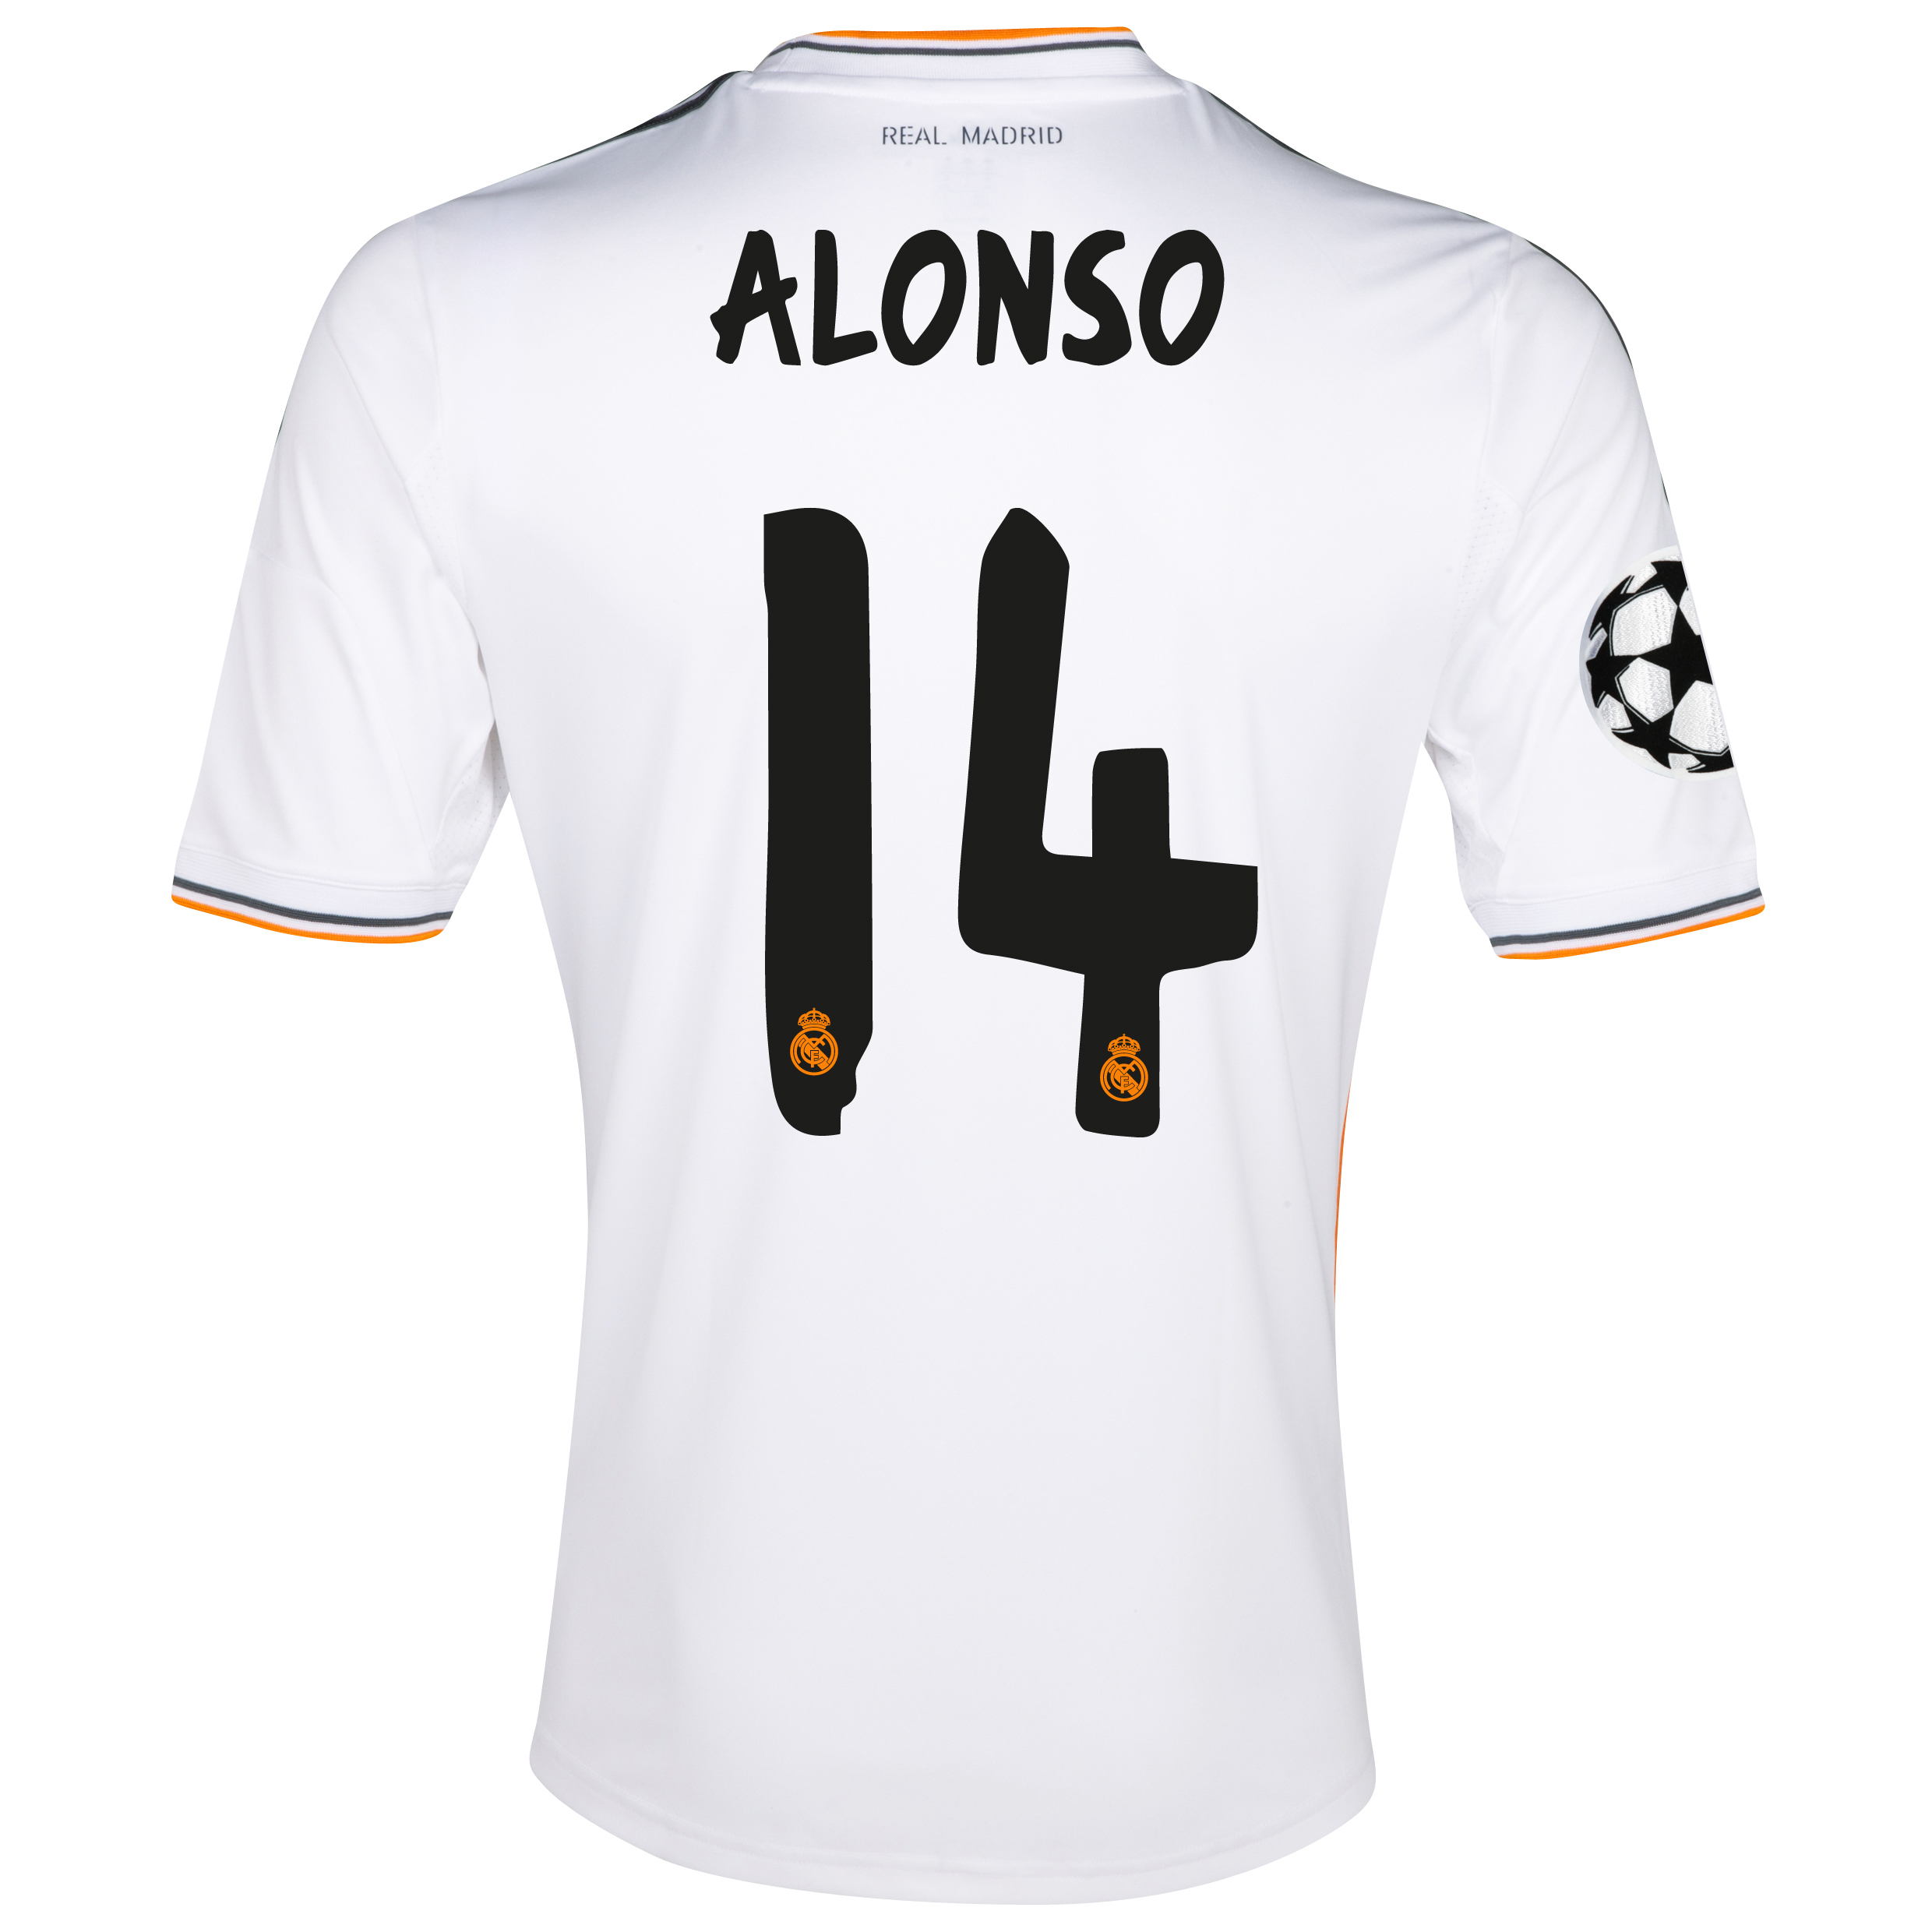 Image of Real Madrid UEFA Champions League Home Shirt 2013/14 with Alonso 14 pr, White